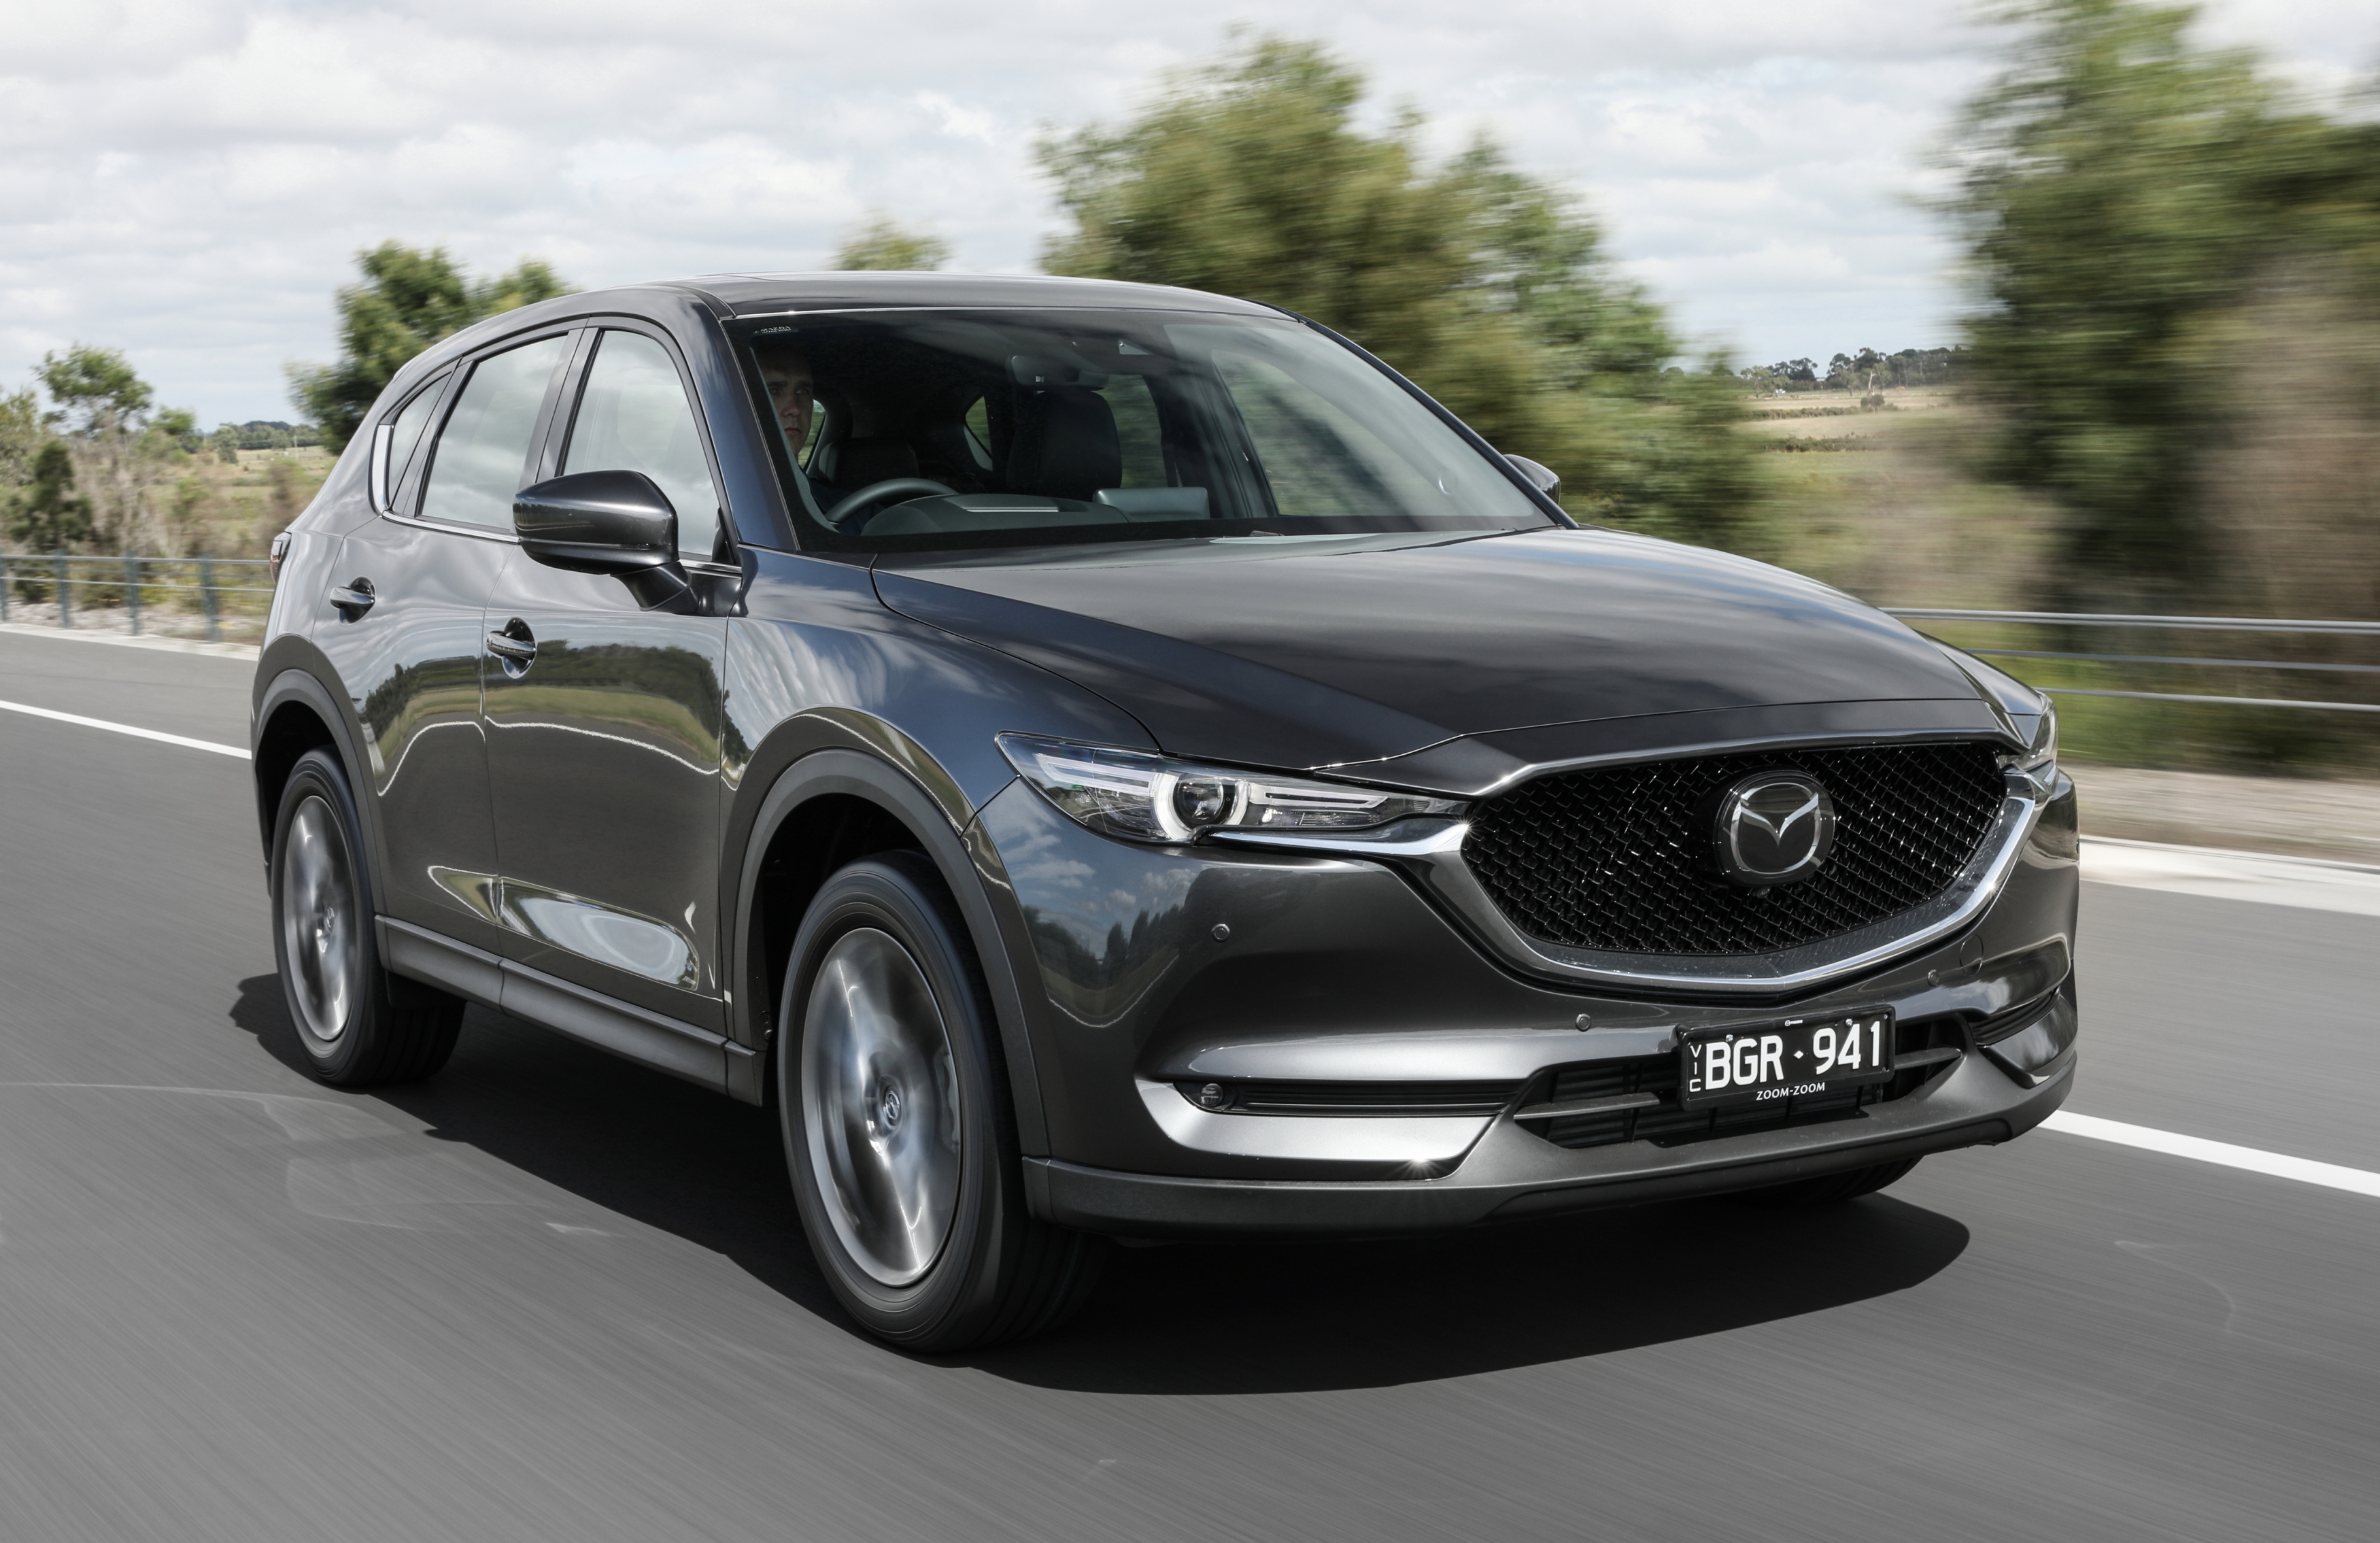 Mazda's CX-5 SUV gets some mid-life upgrades